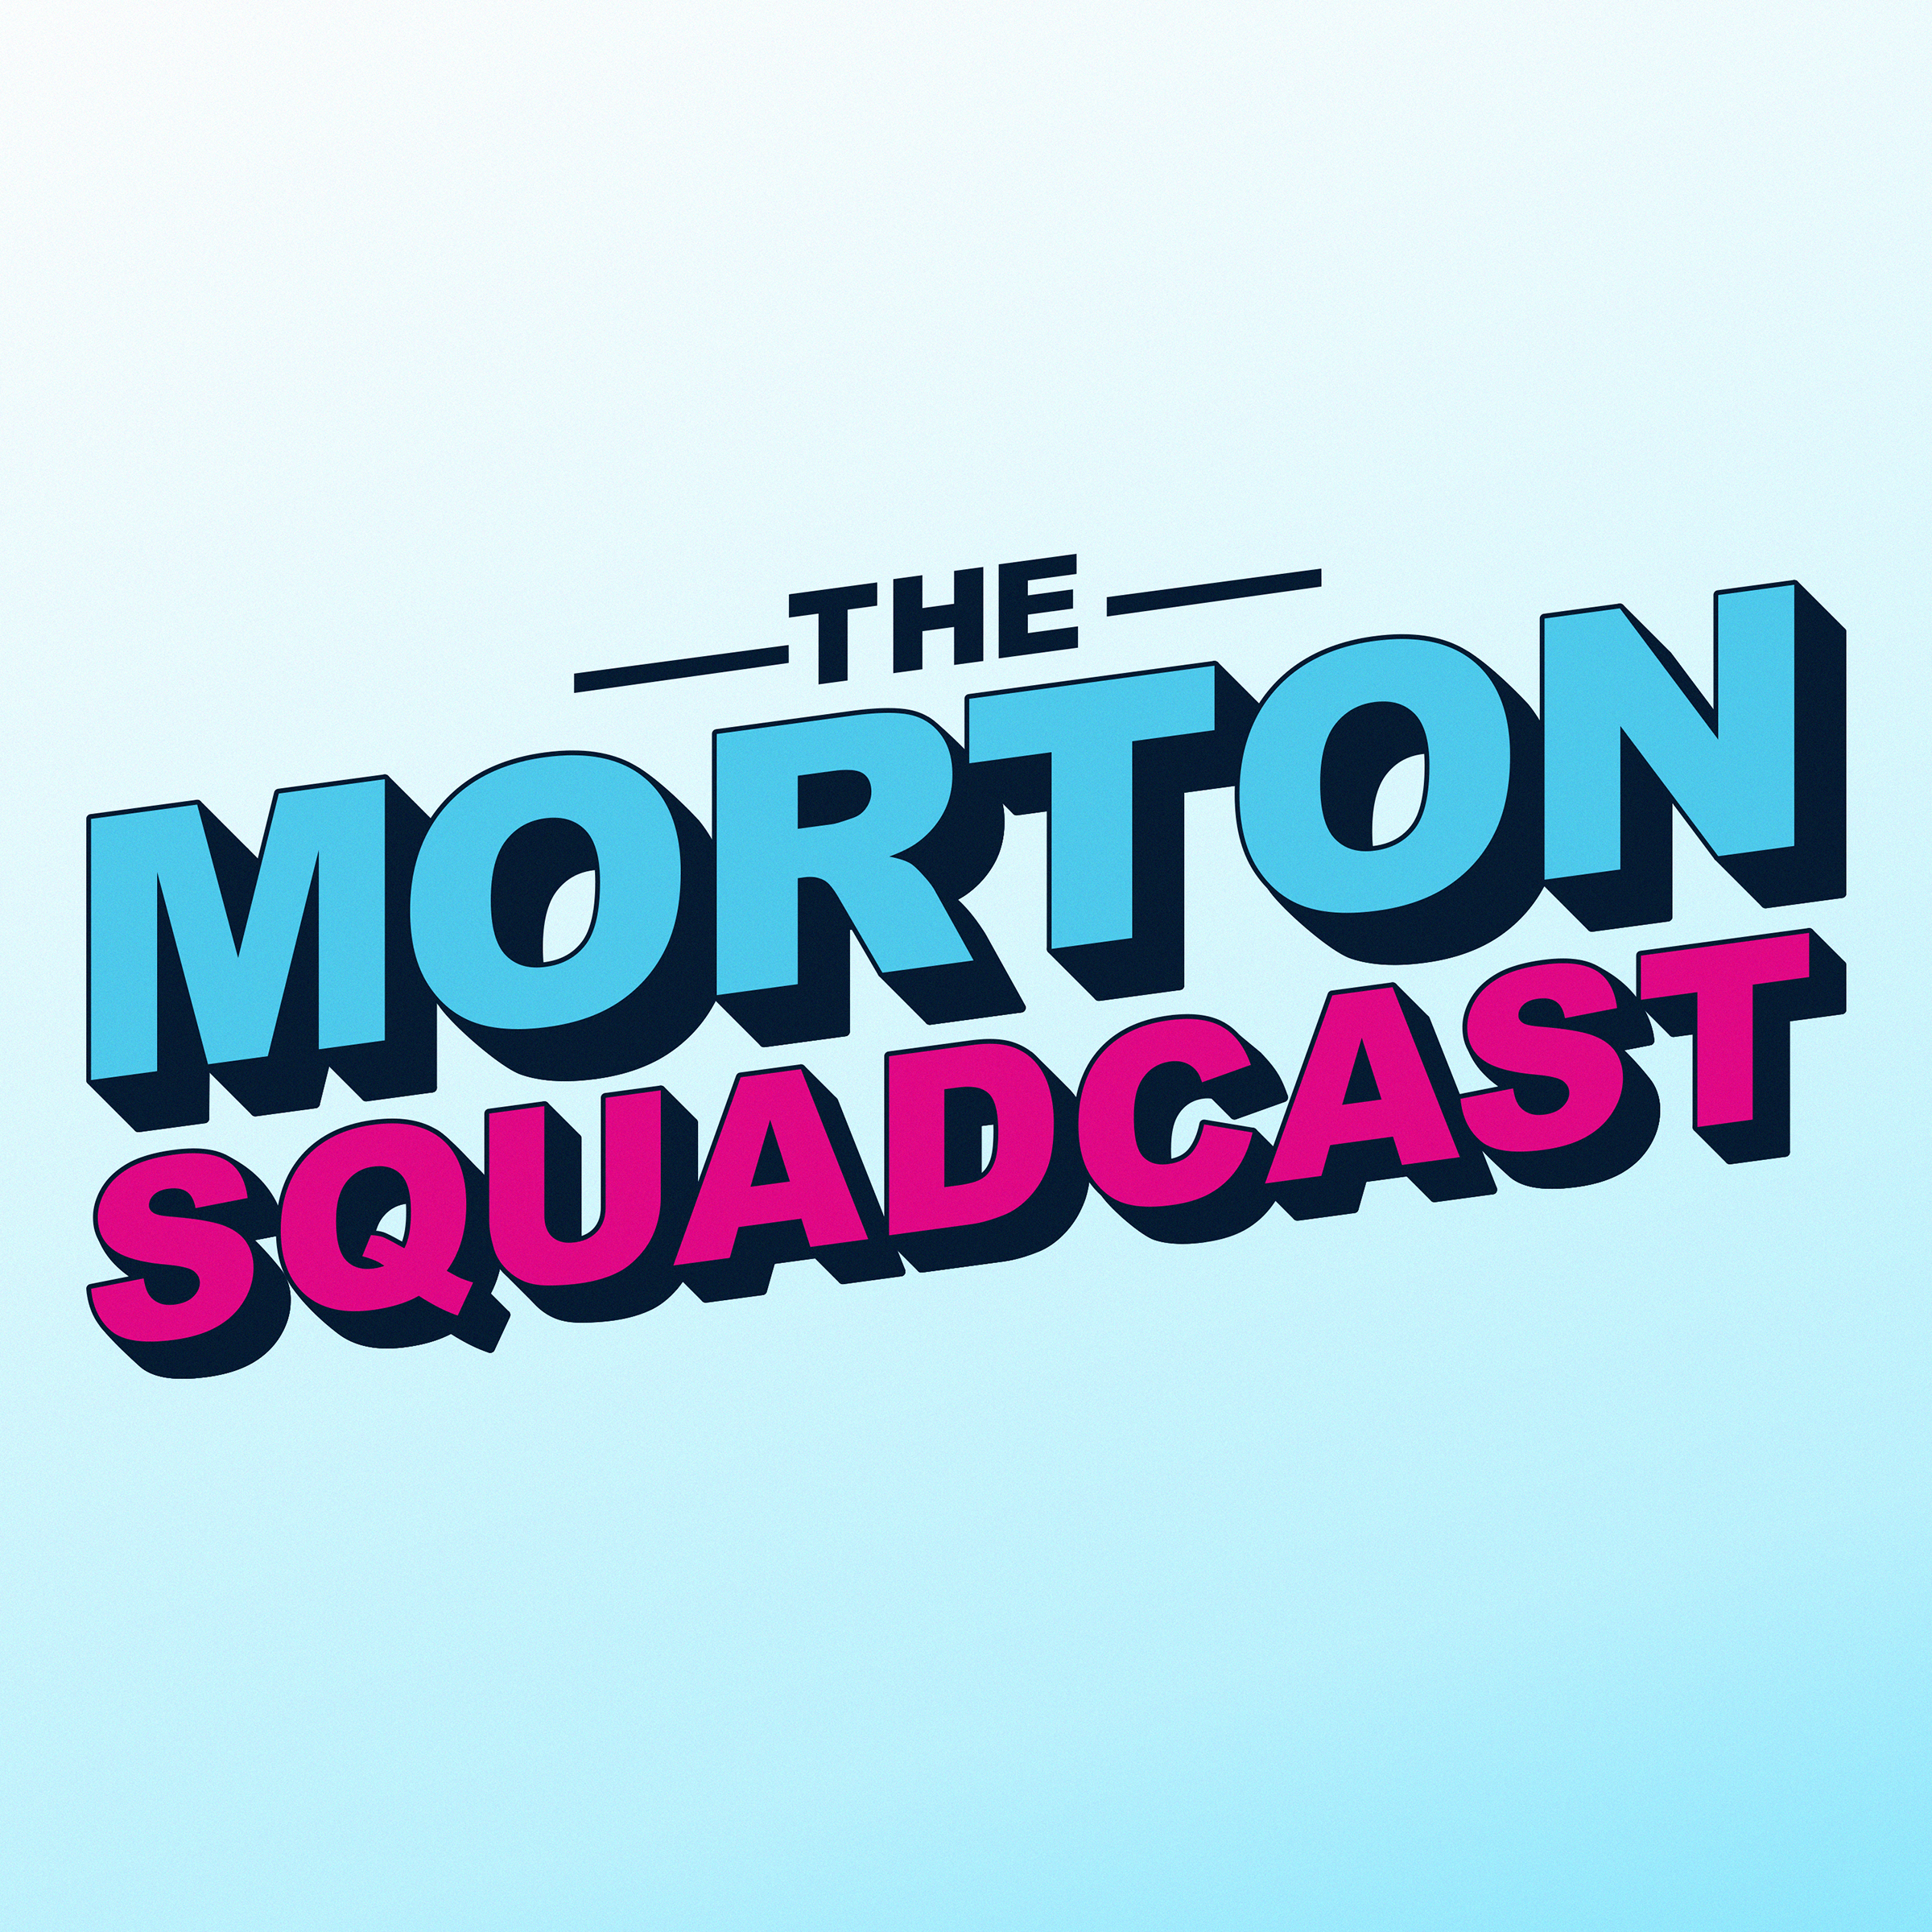 The Morton Squadcast show art